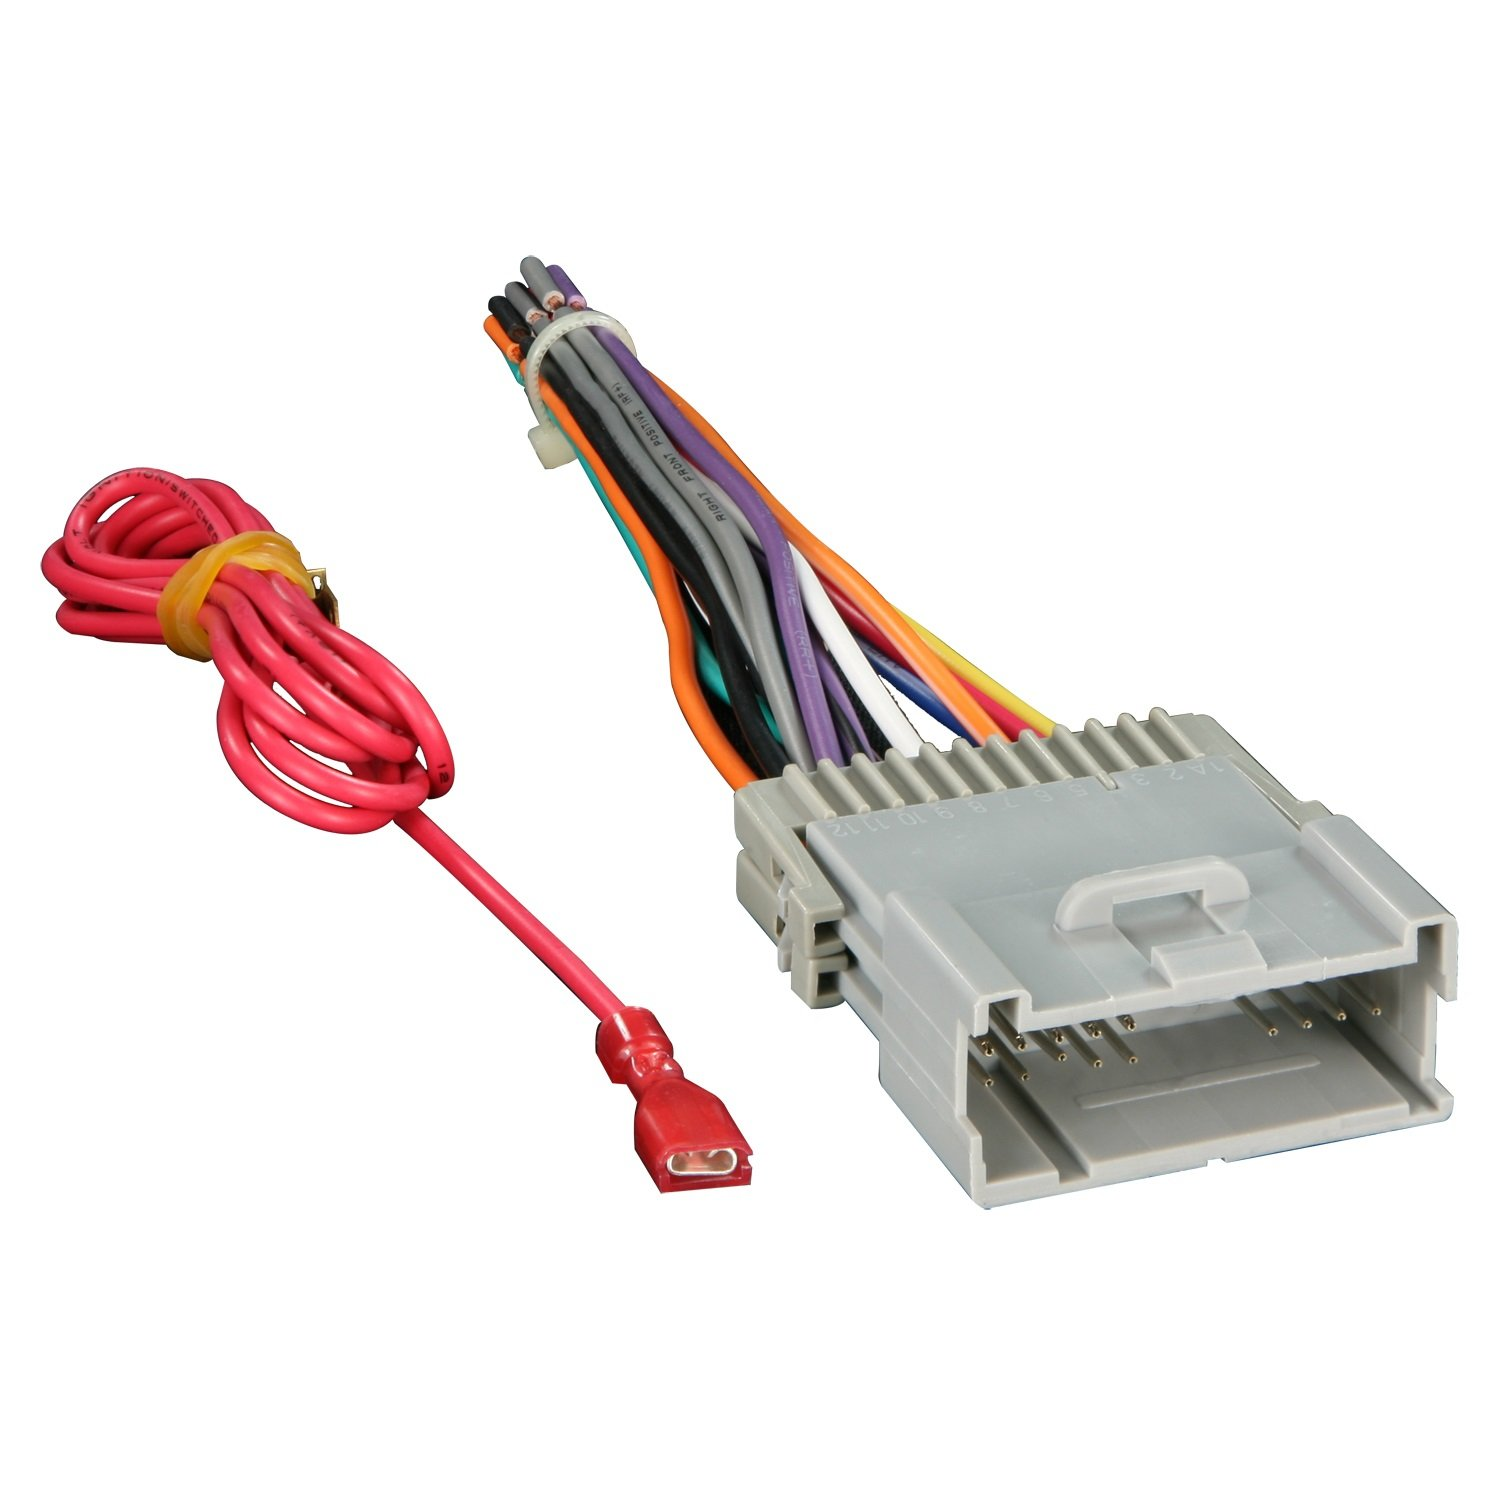 61eewxp9orL._SL1500_ amazon com metra 70 2003 radio wiring harness for gm 98 08 radio wiring harness adapter at mifinder.co